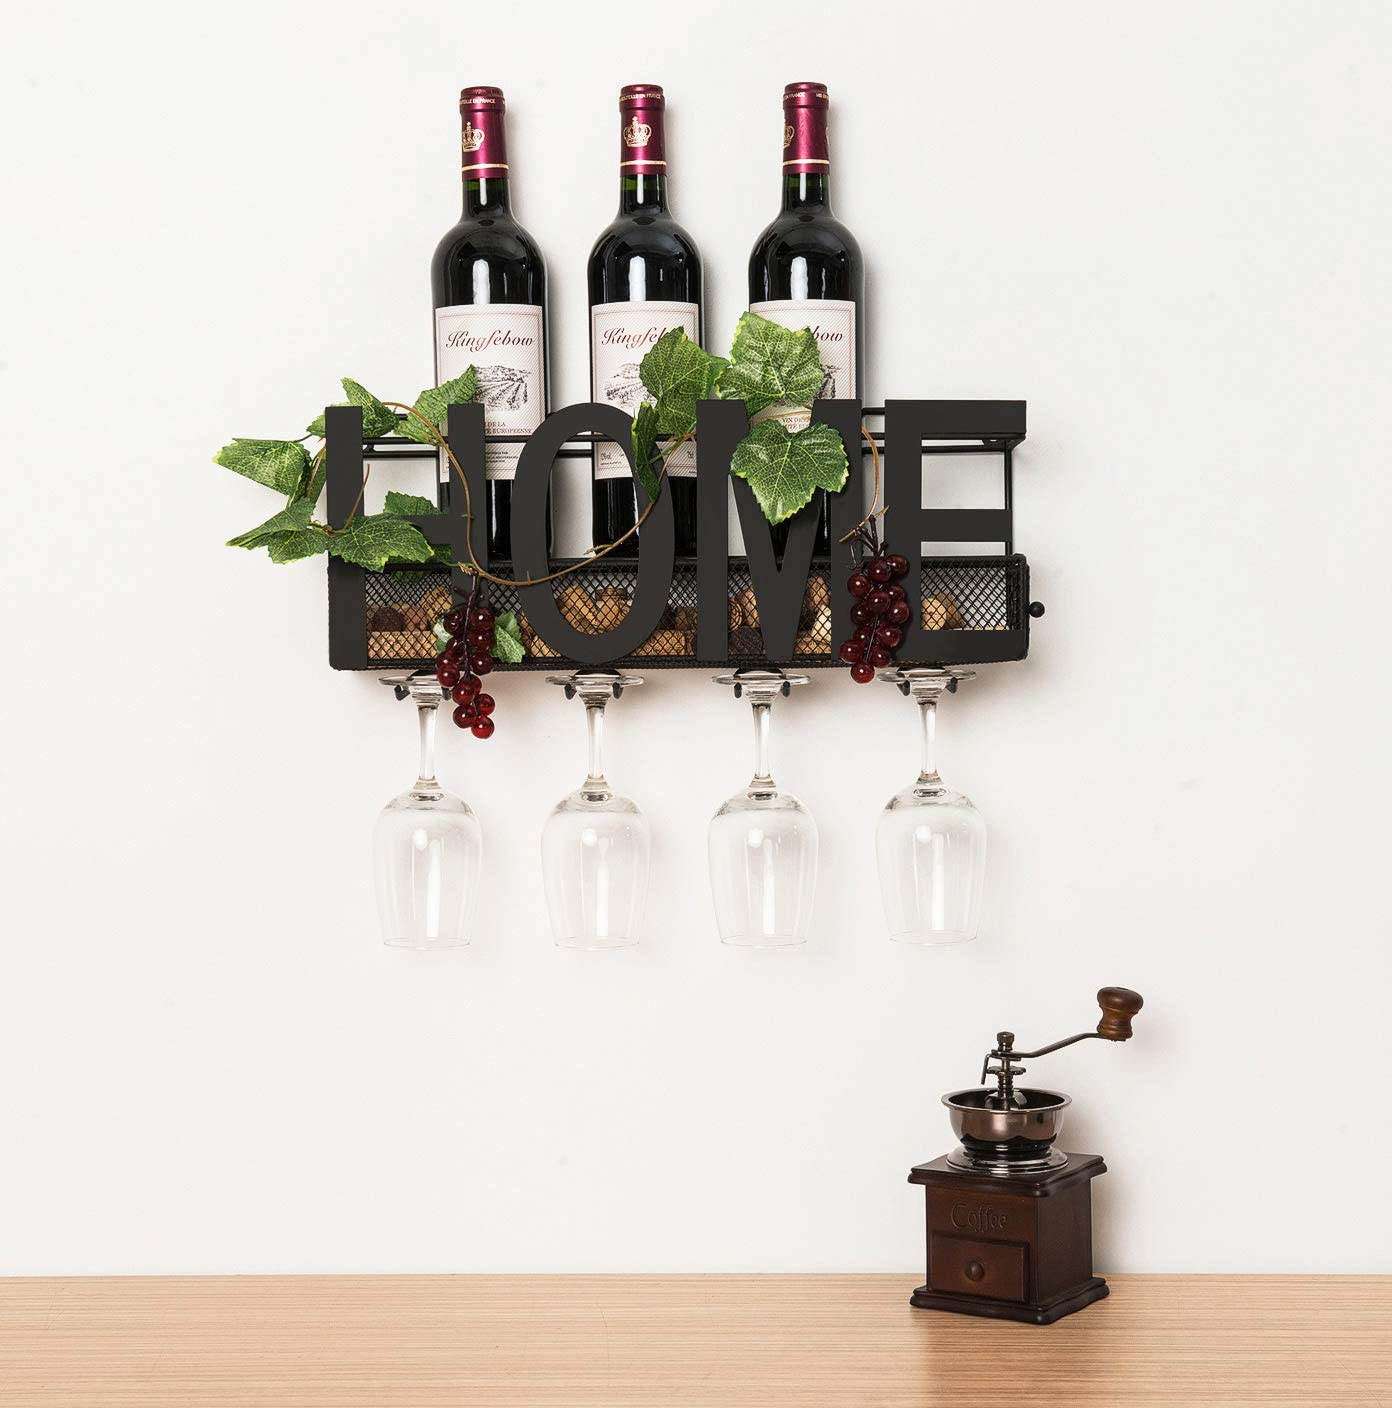 Best Wall Mount Wine Rack Holds 5 Bottles and 4 Glasses - ANNA STAY WINE RACK REPLACEMENT